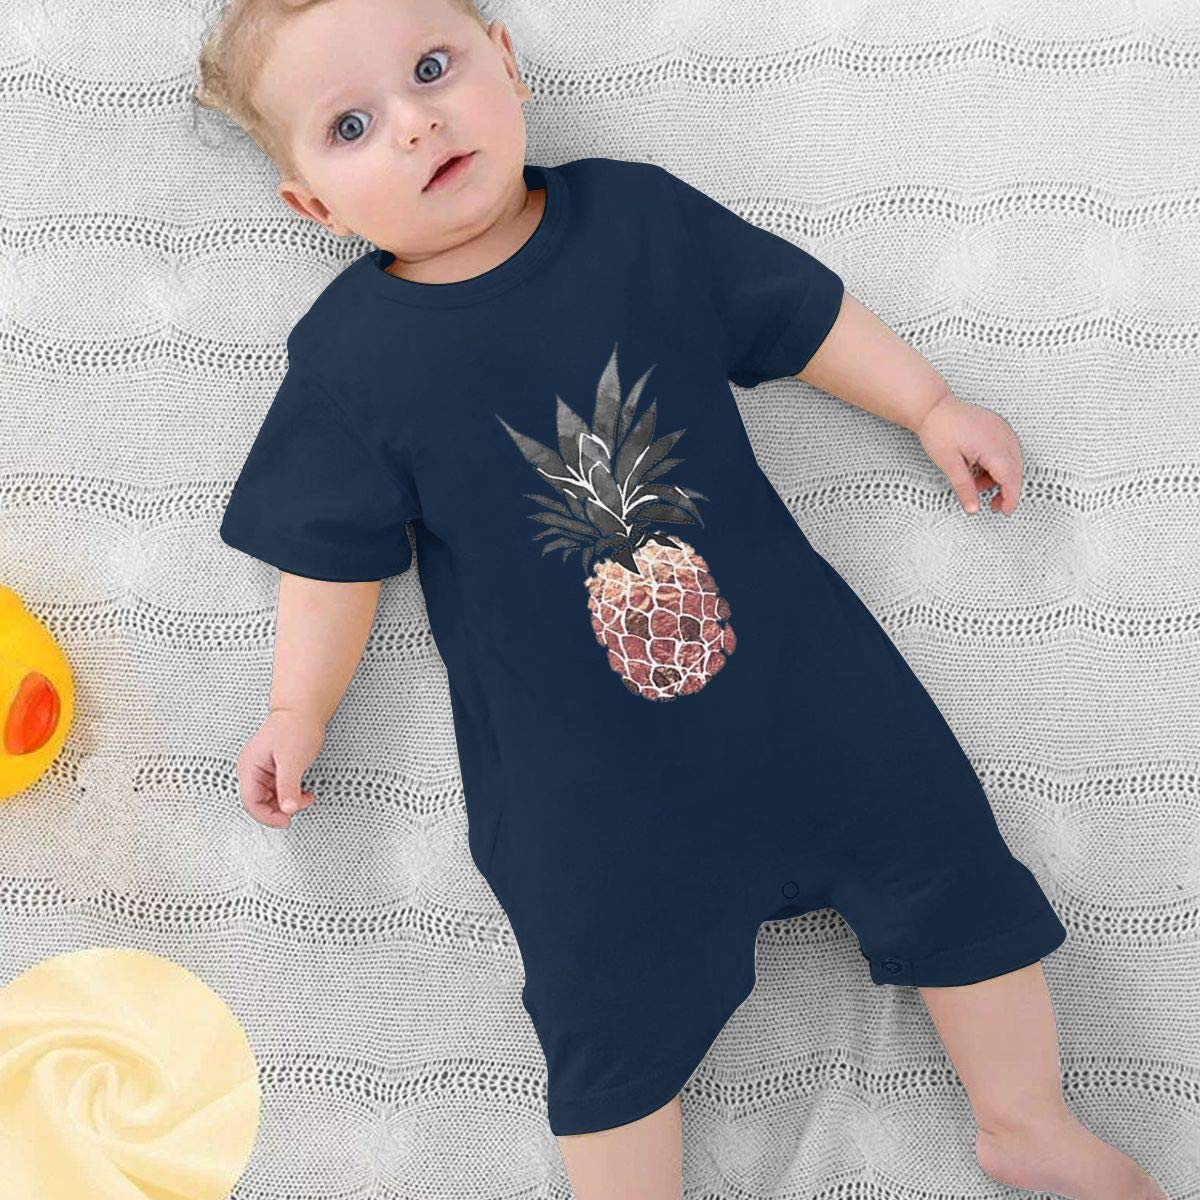 Simoner Baby Infant Boy Girl Short Sleeve Pineapple Jumpsuit Romper Pajamas Clothes Summer Outfits Black